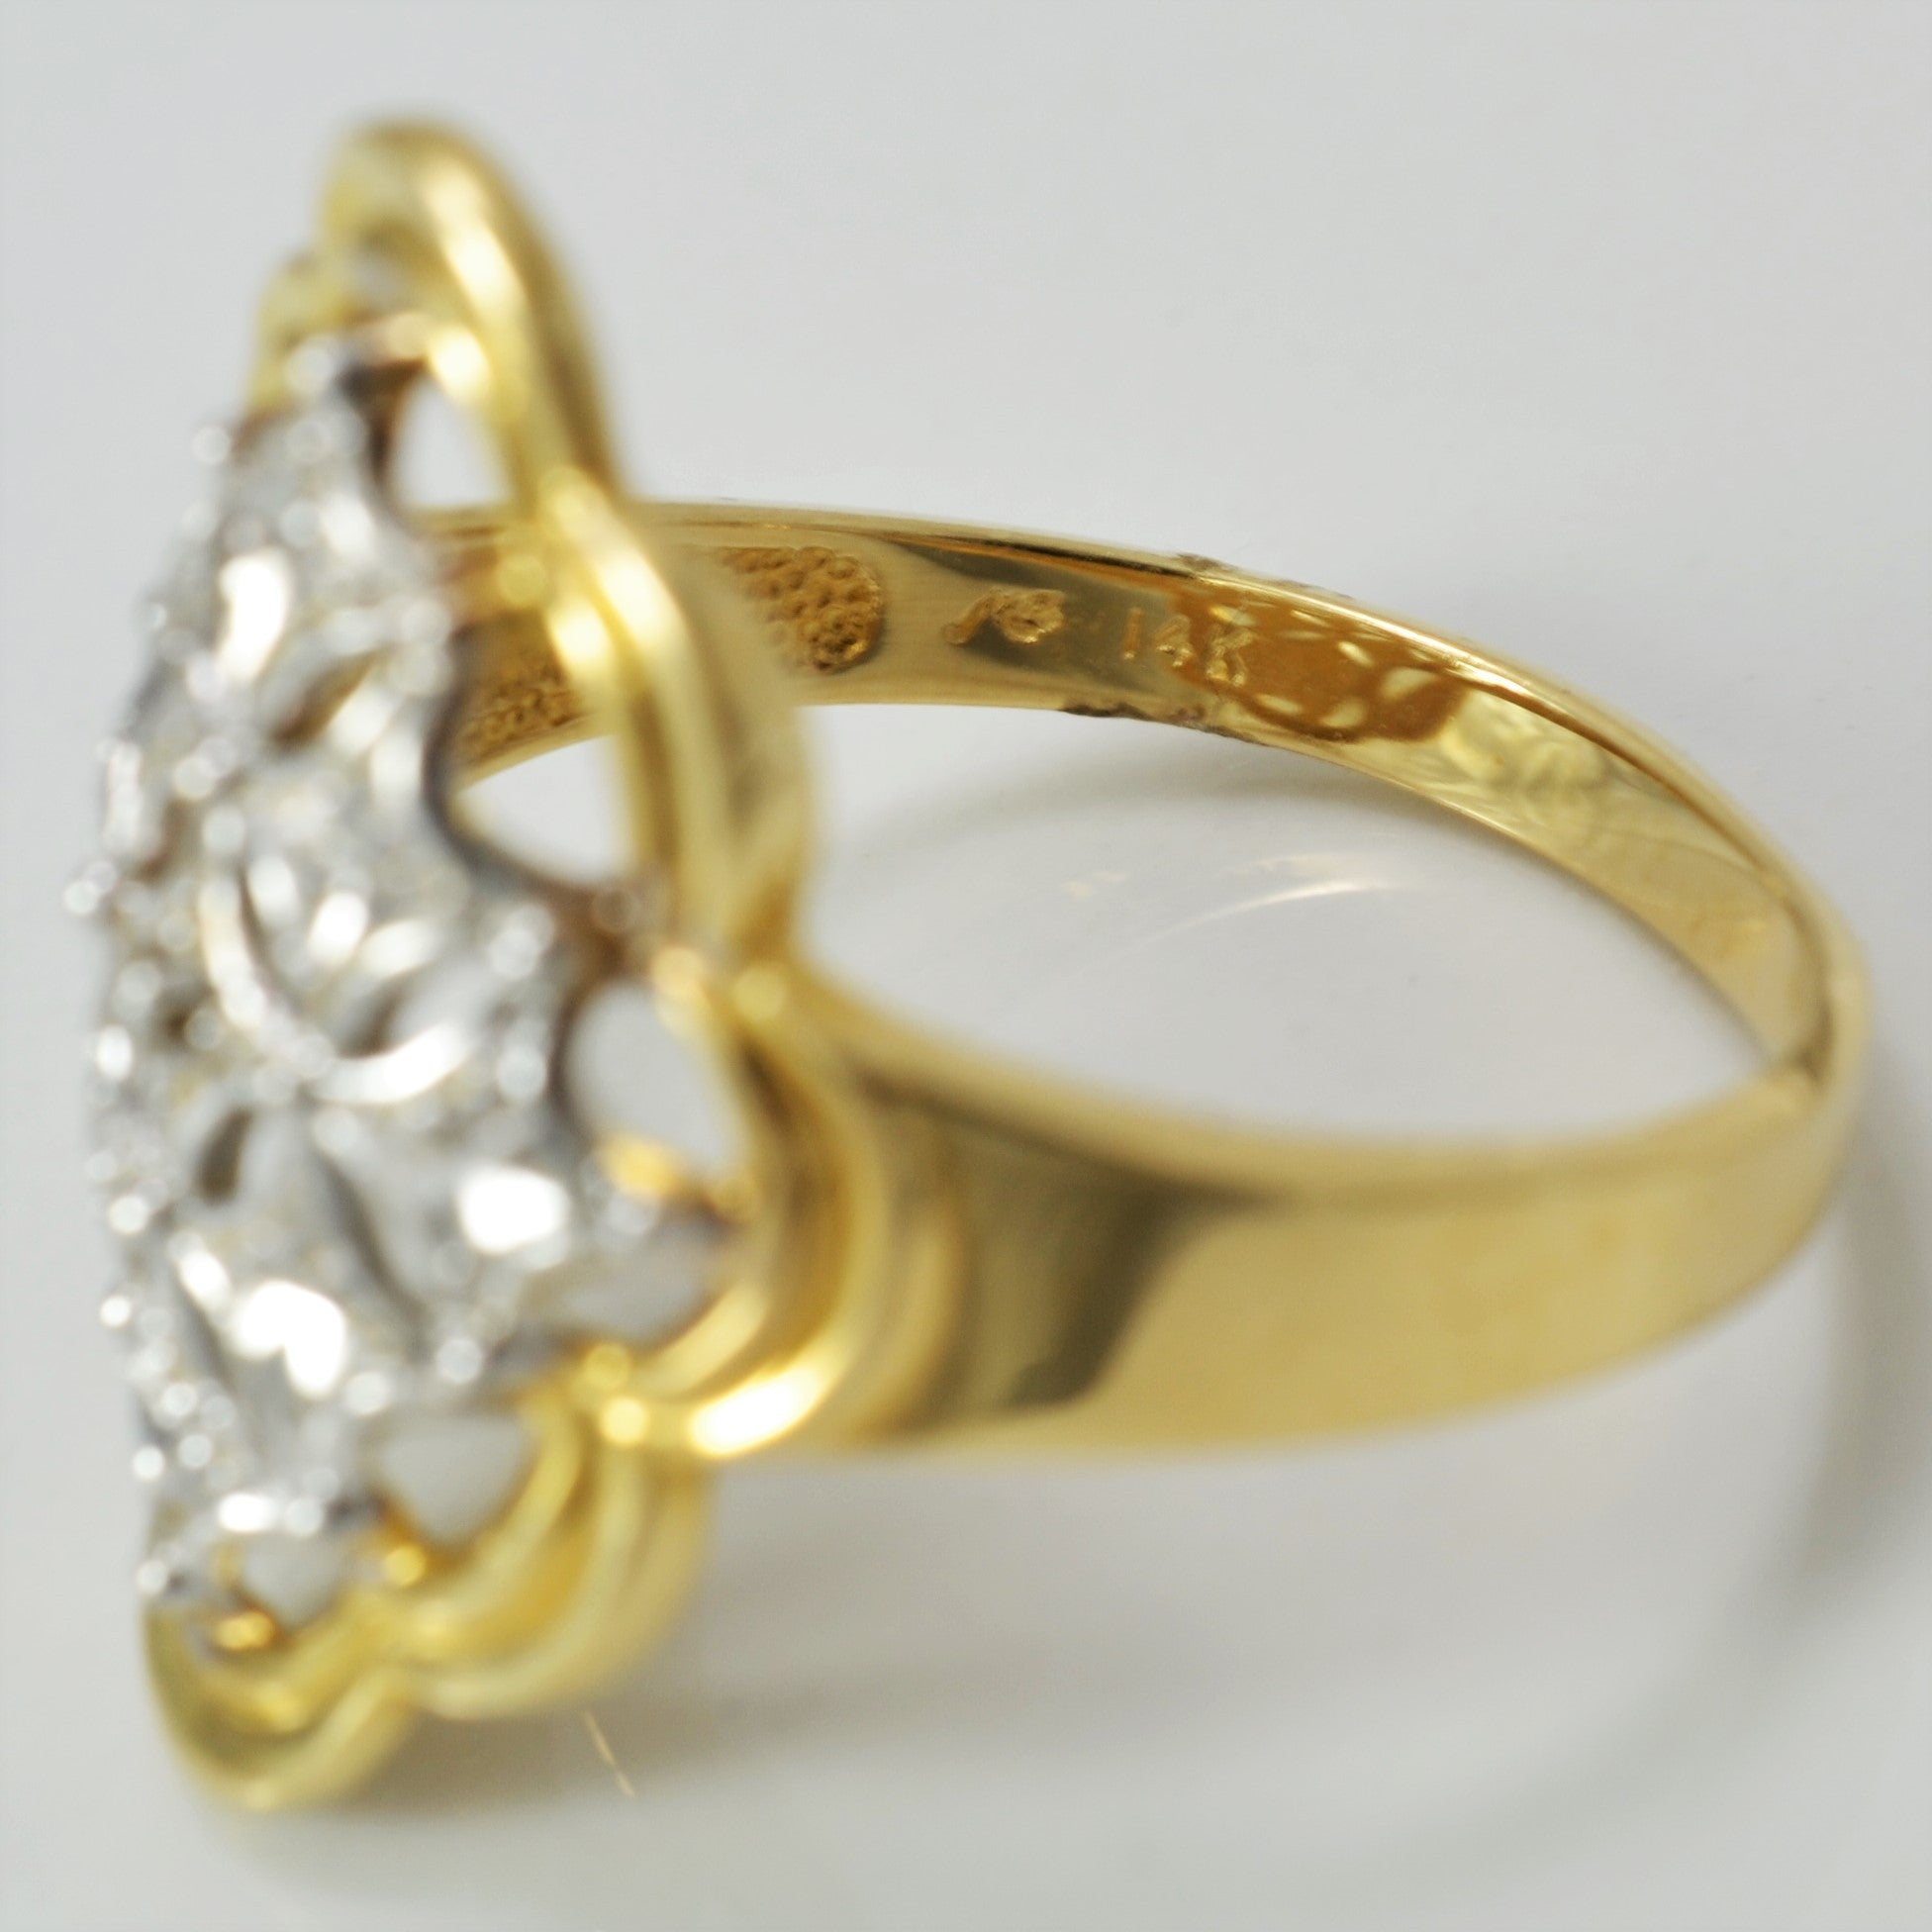 Marquise Shaped Diamond Cocktail Ring | 0.01 ct, SZ 10 |